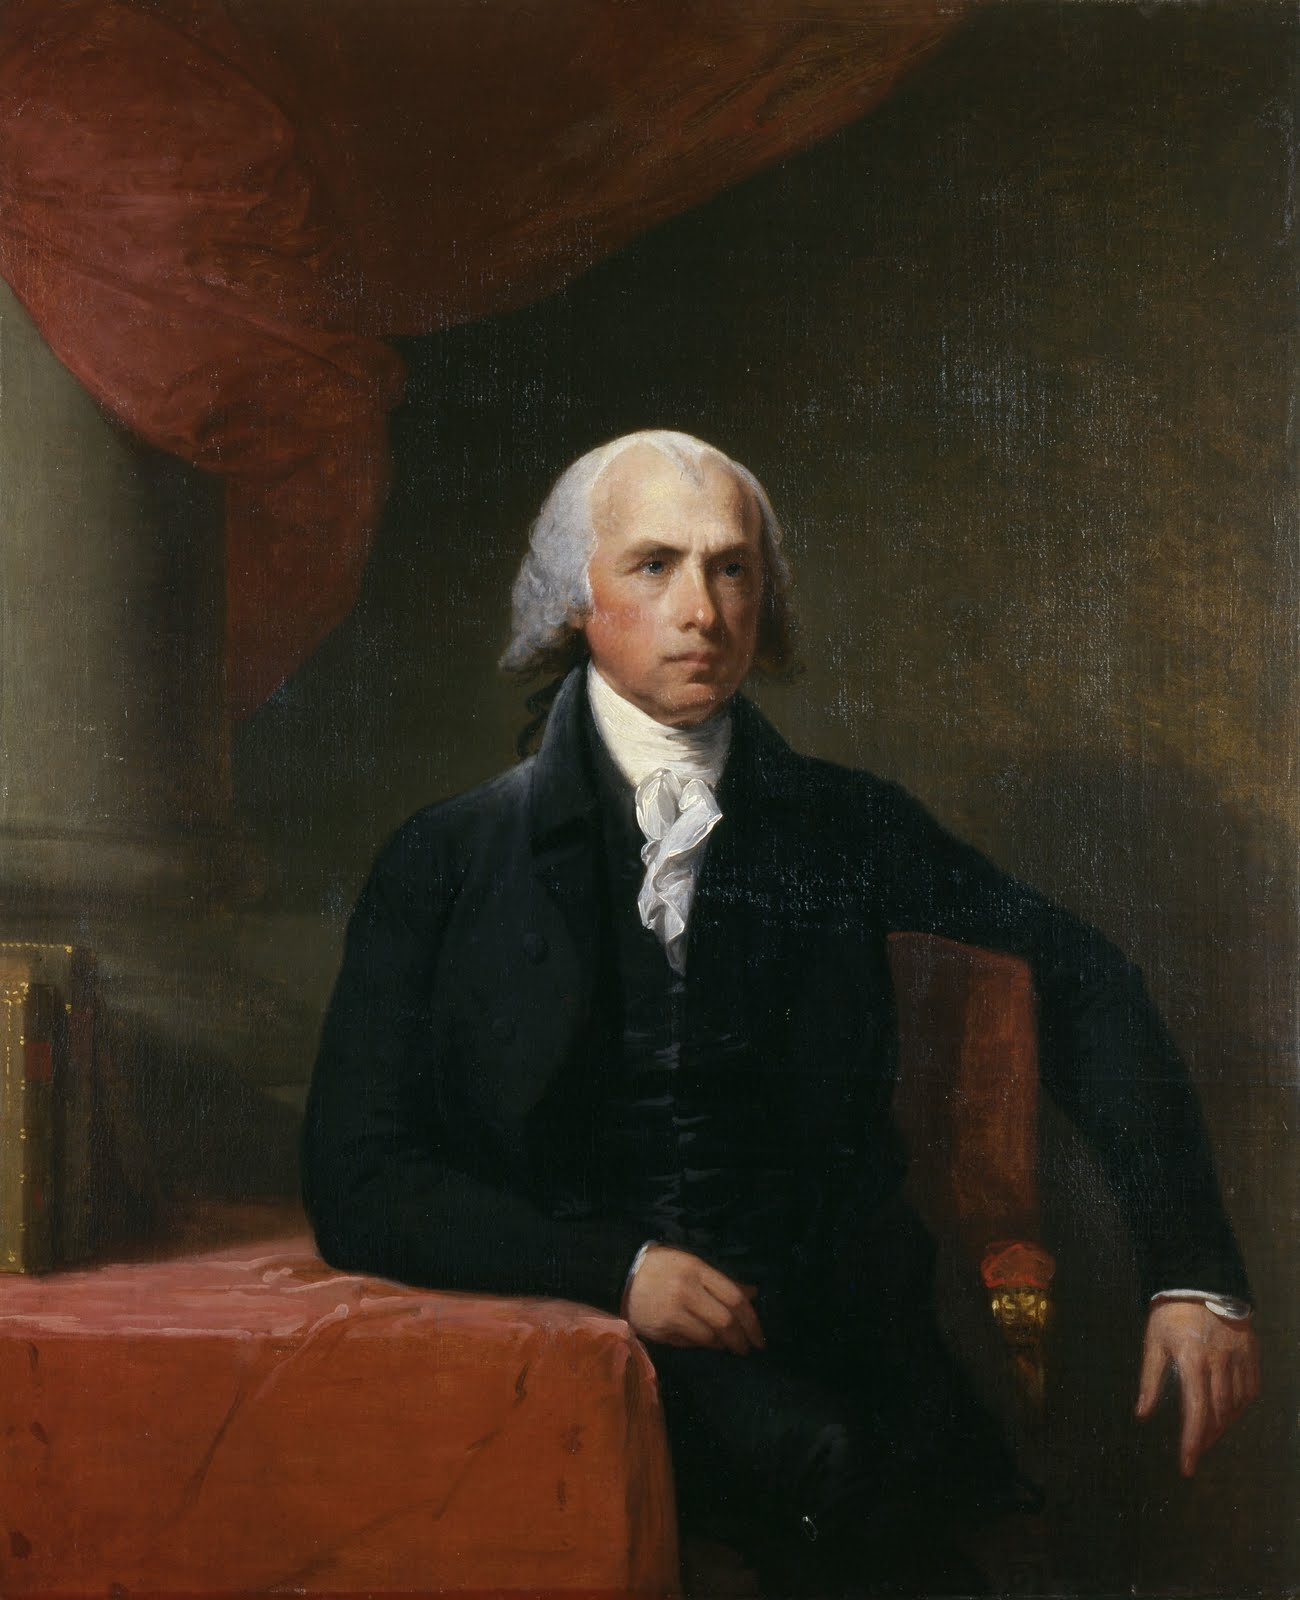 The Dividist Papers Prop  James Madison And Majority Rule James Madison By Gilbert Stuart Prop  James Madison And Majority Rule